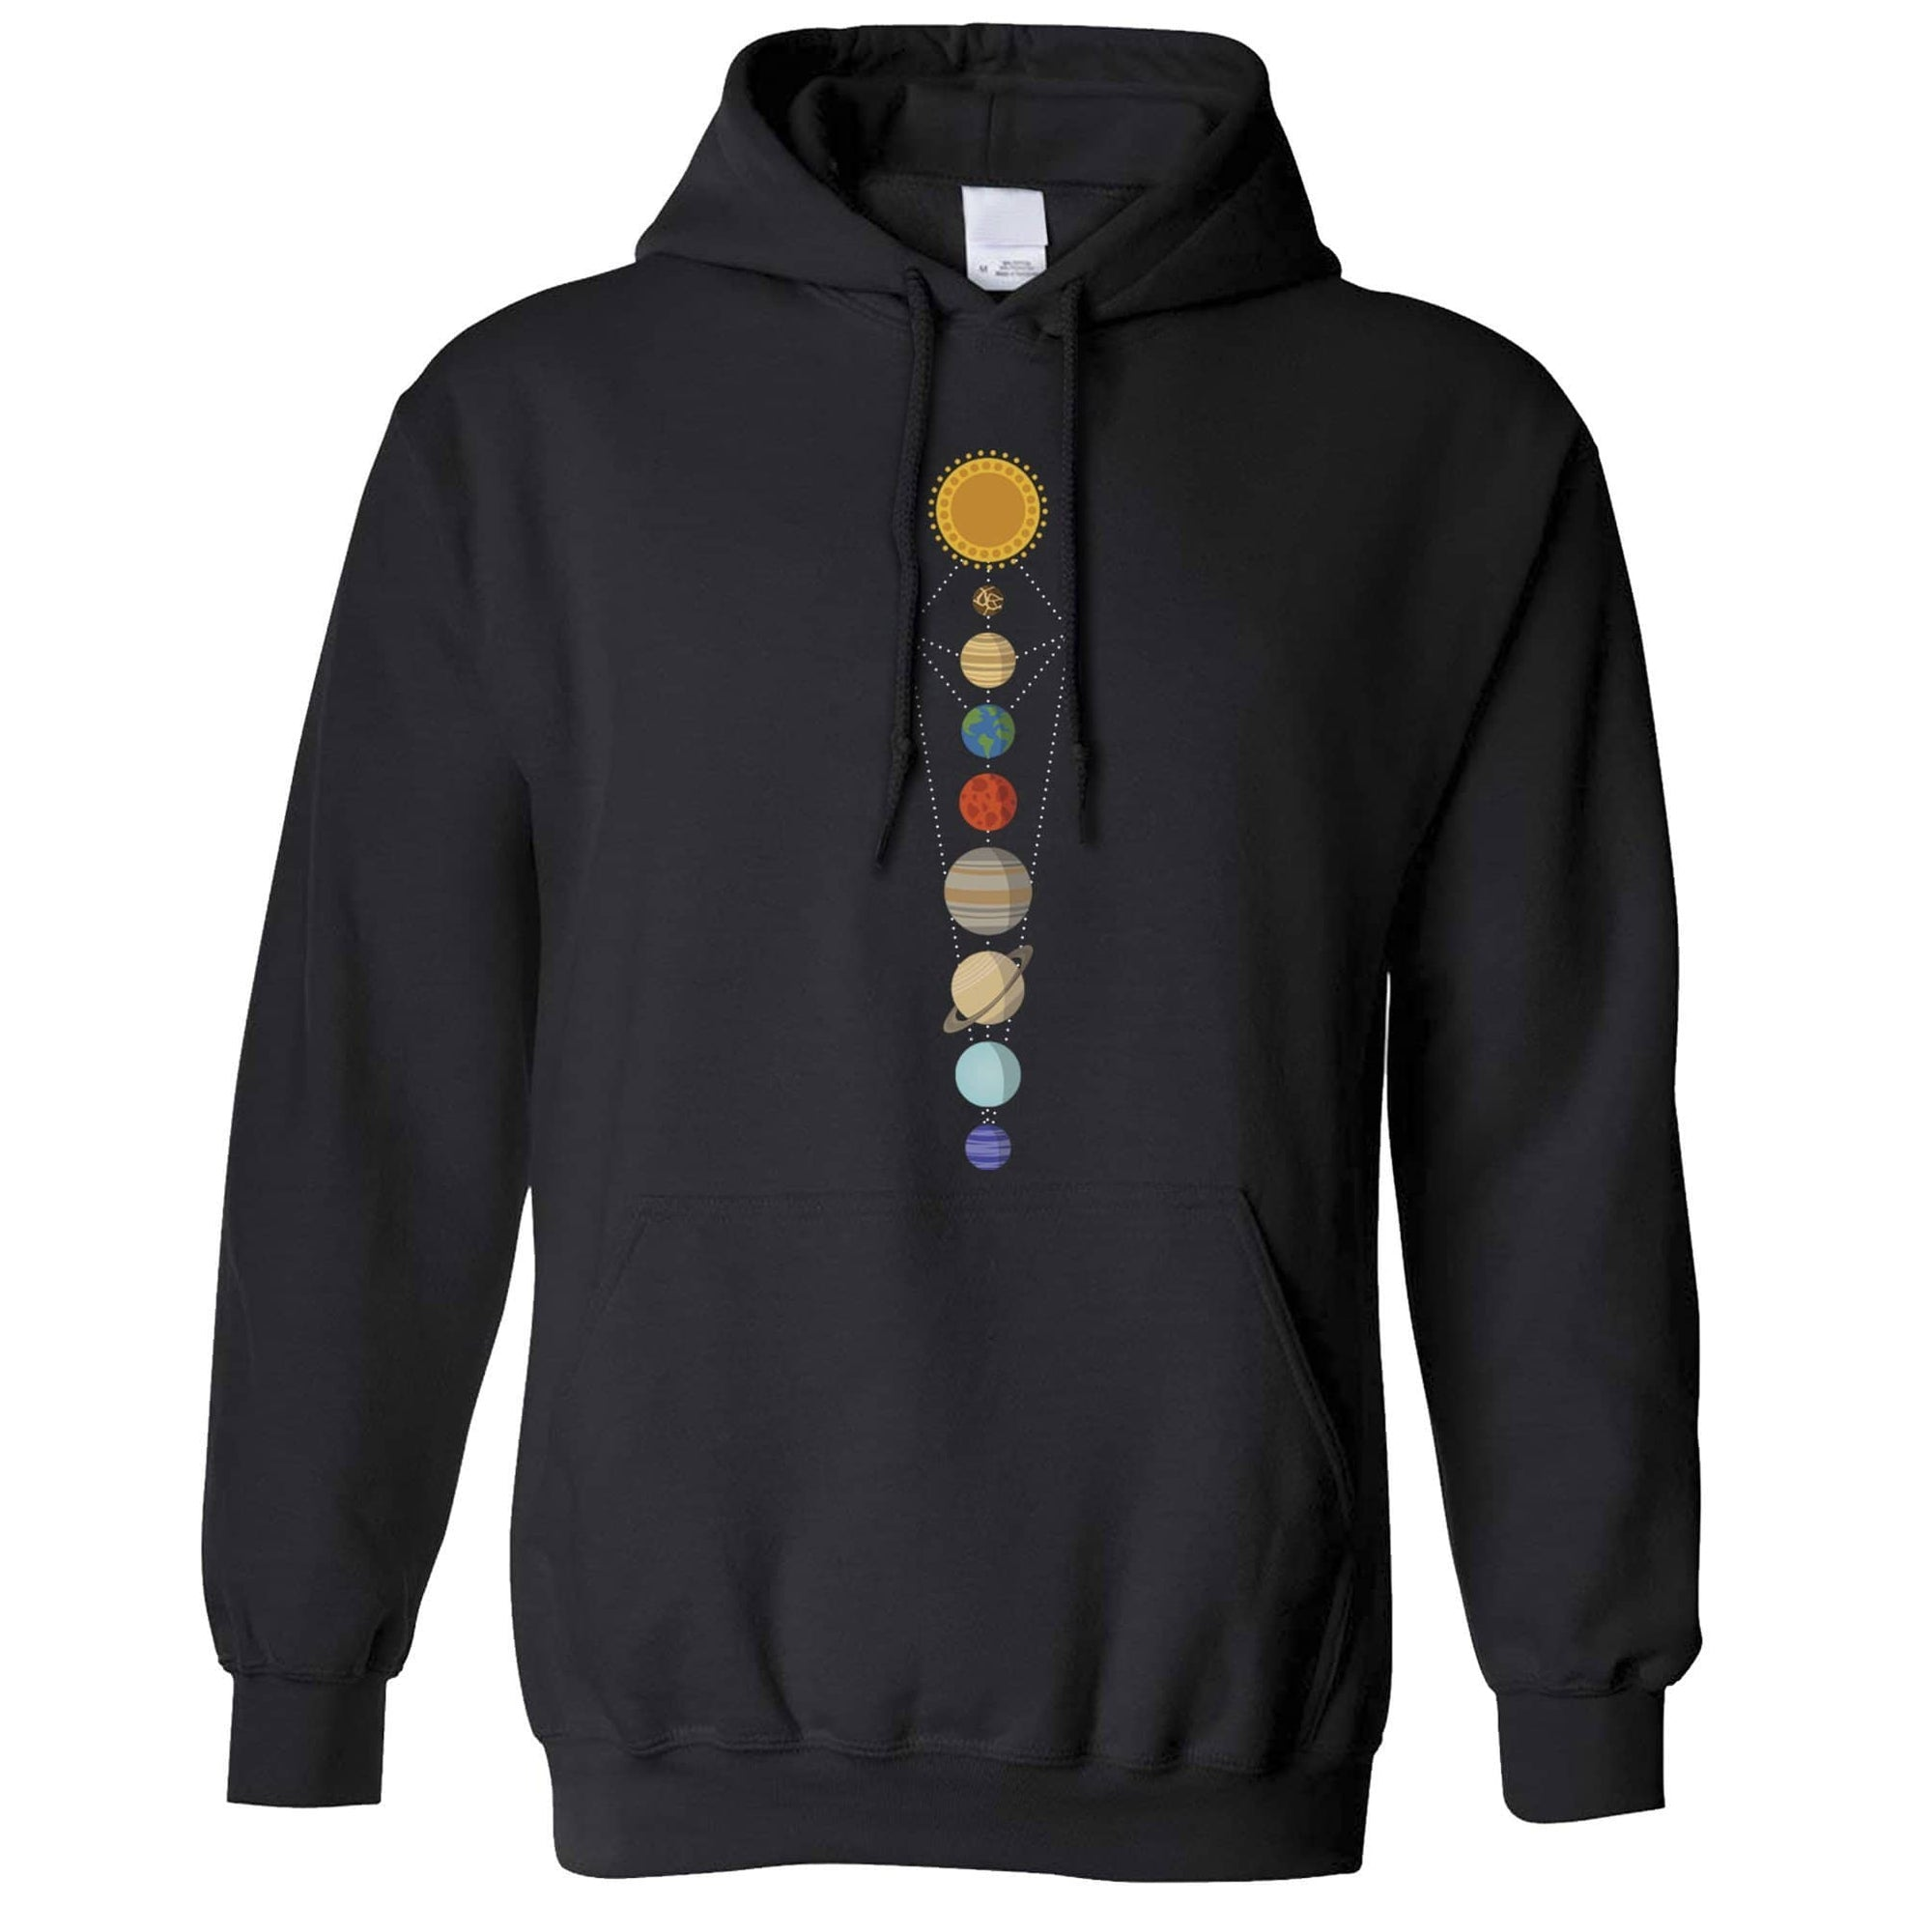 Cool Nerdy Hoodie Geometric Solar System Space Art Hooded Jumper